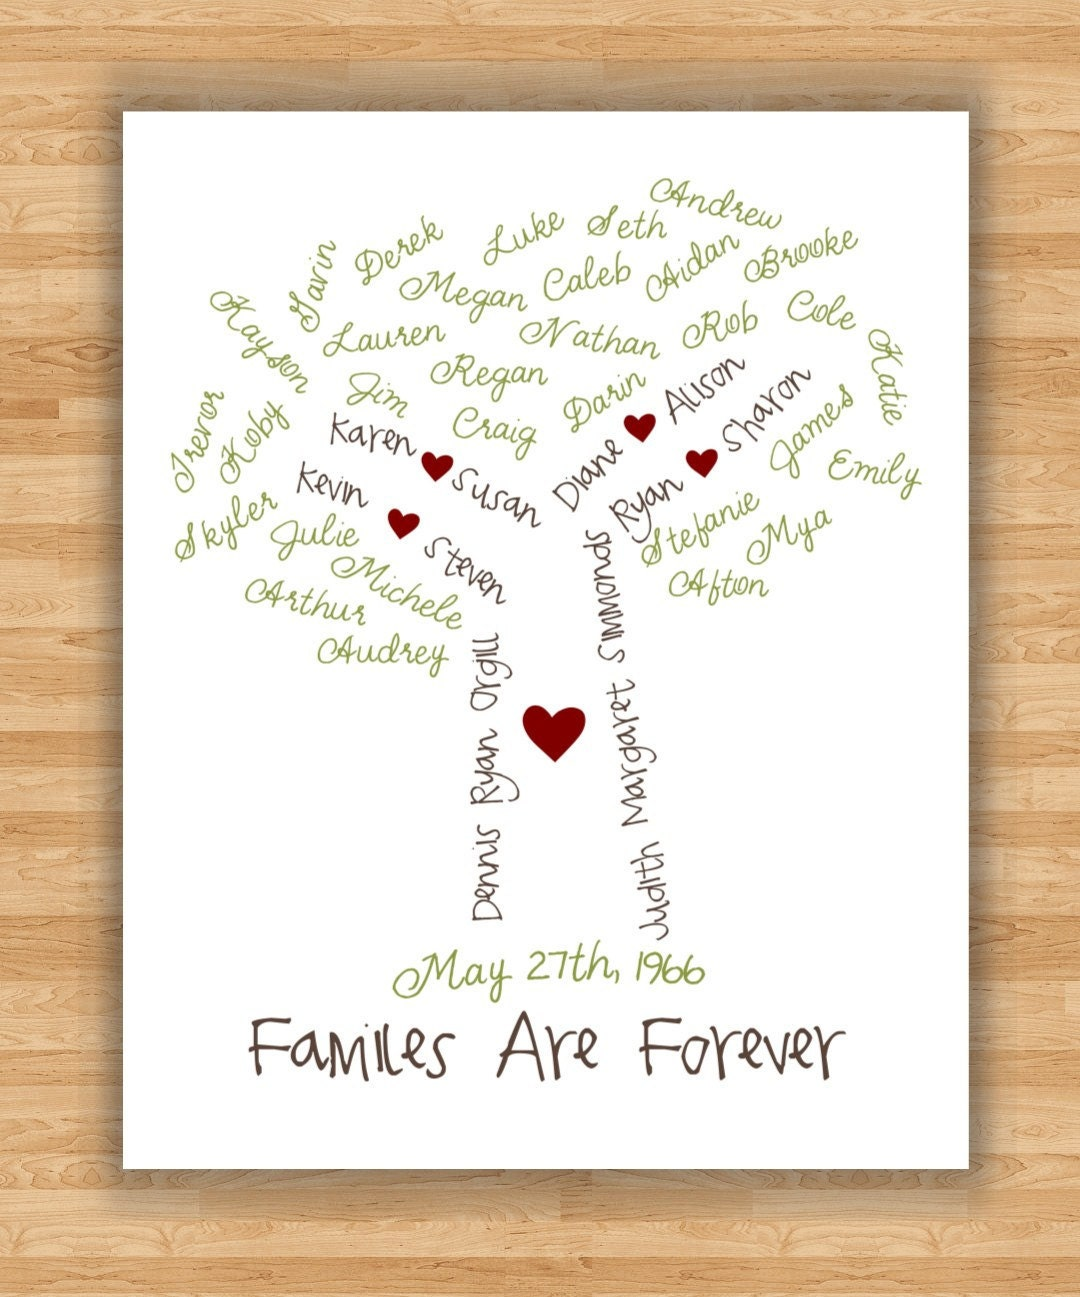 11x14 wall art print personalized family tree by. Black Bedroom Furniture Sets. Home Design Ideas